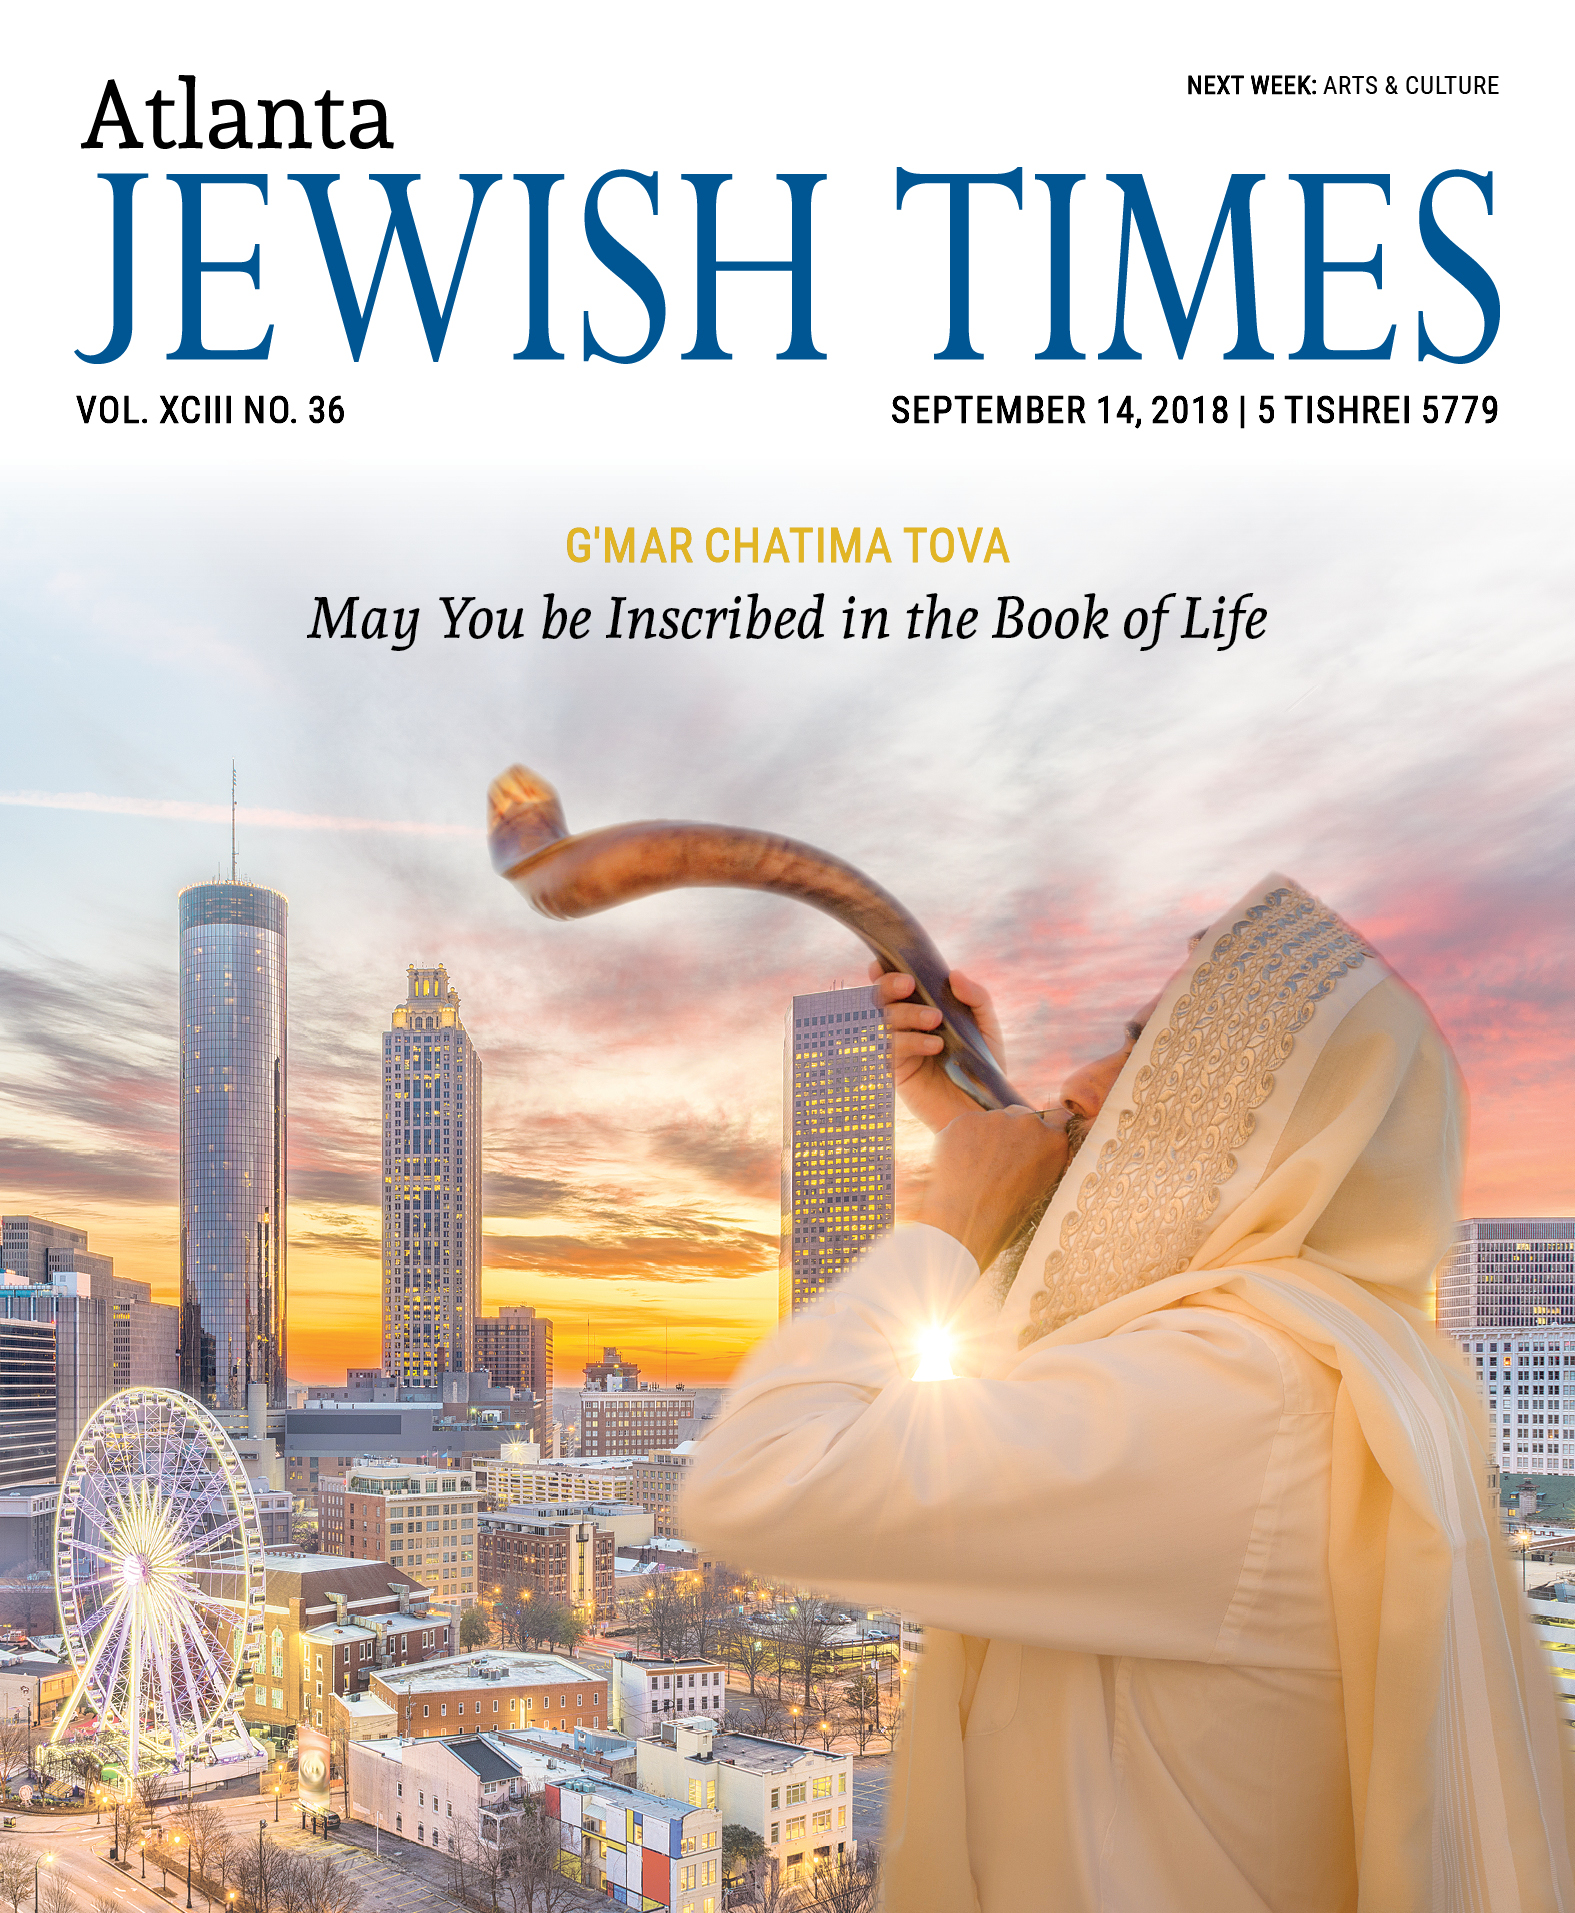 Yom Kippur Issue Vol. XCIII No. 36, September 14, 2018